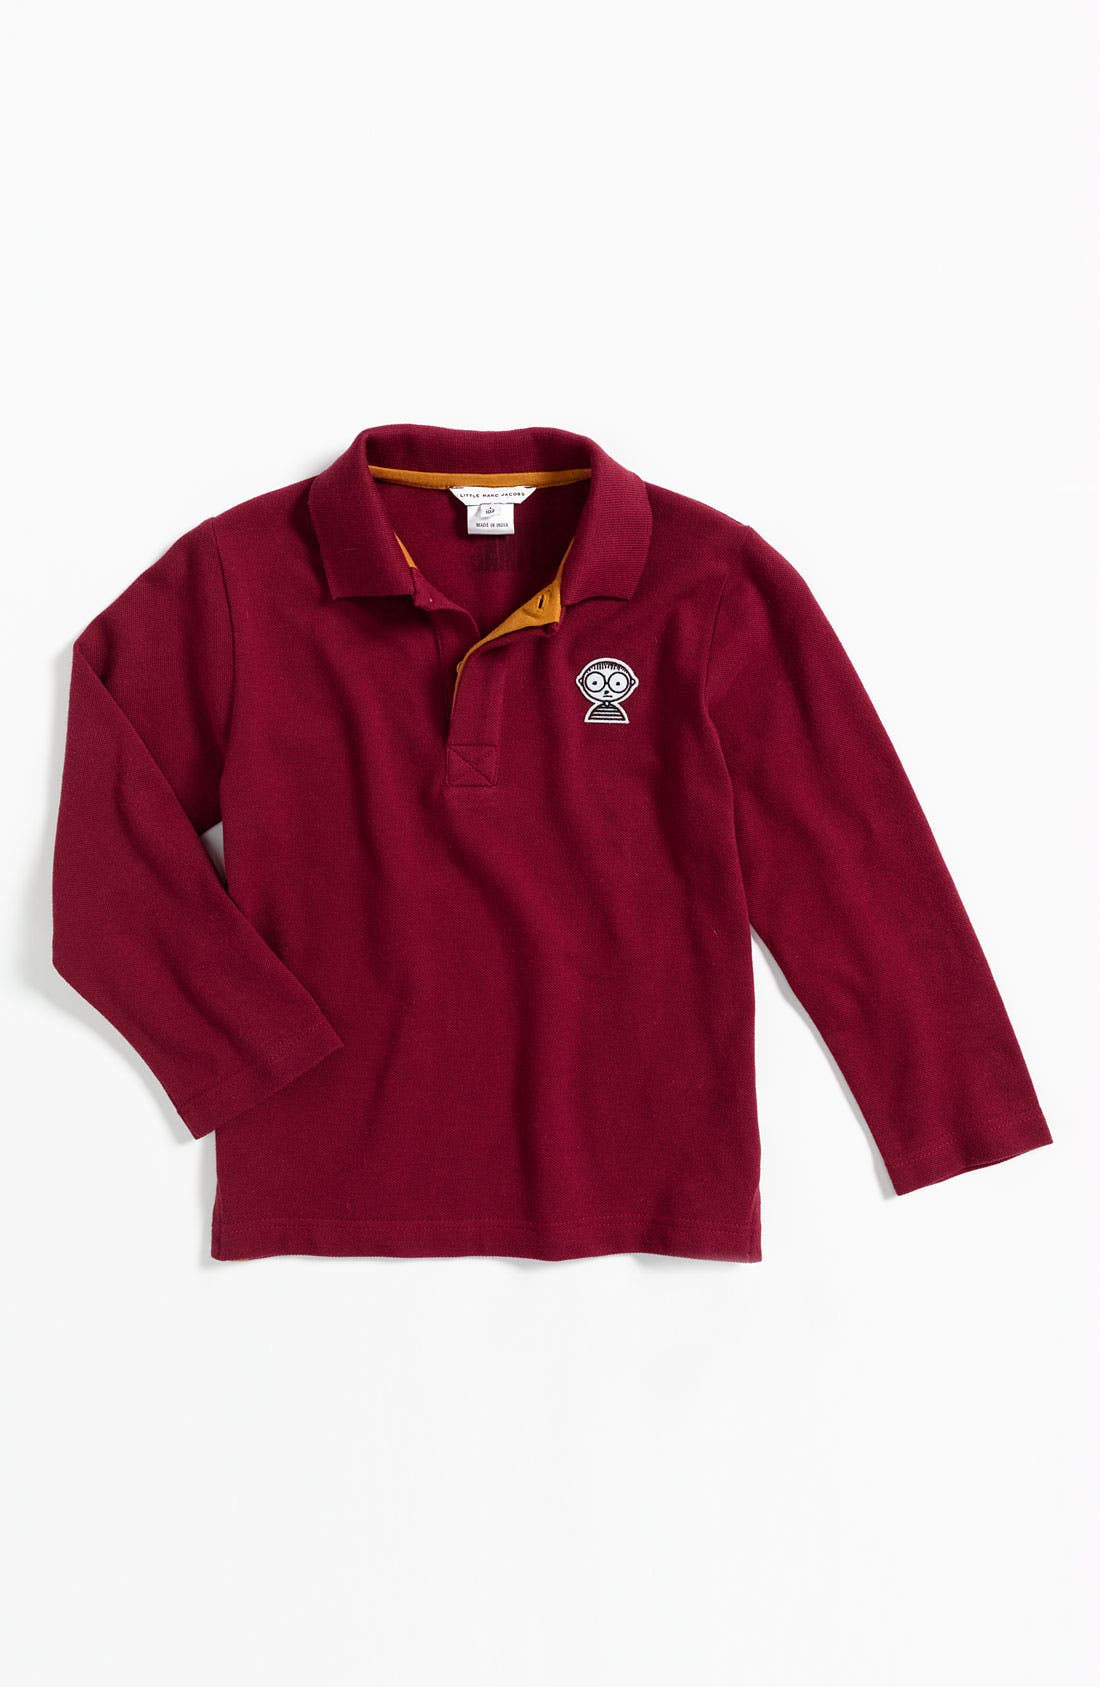 Alternate Image 1 Selected - LITTLE MARC JACOBS 'Mister Marc' Long Sleeve Polo (Little Boys)